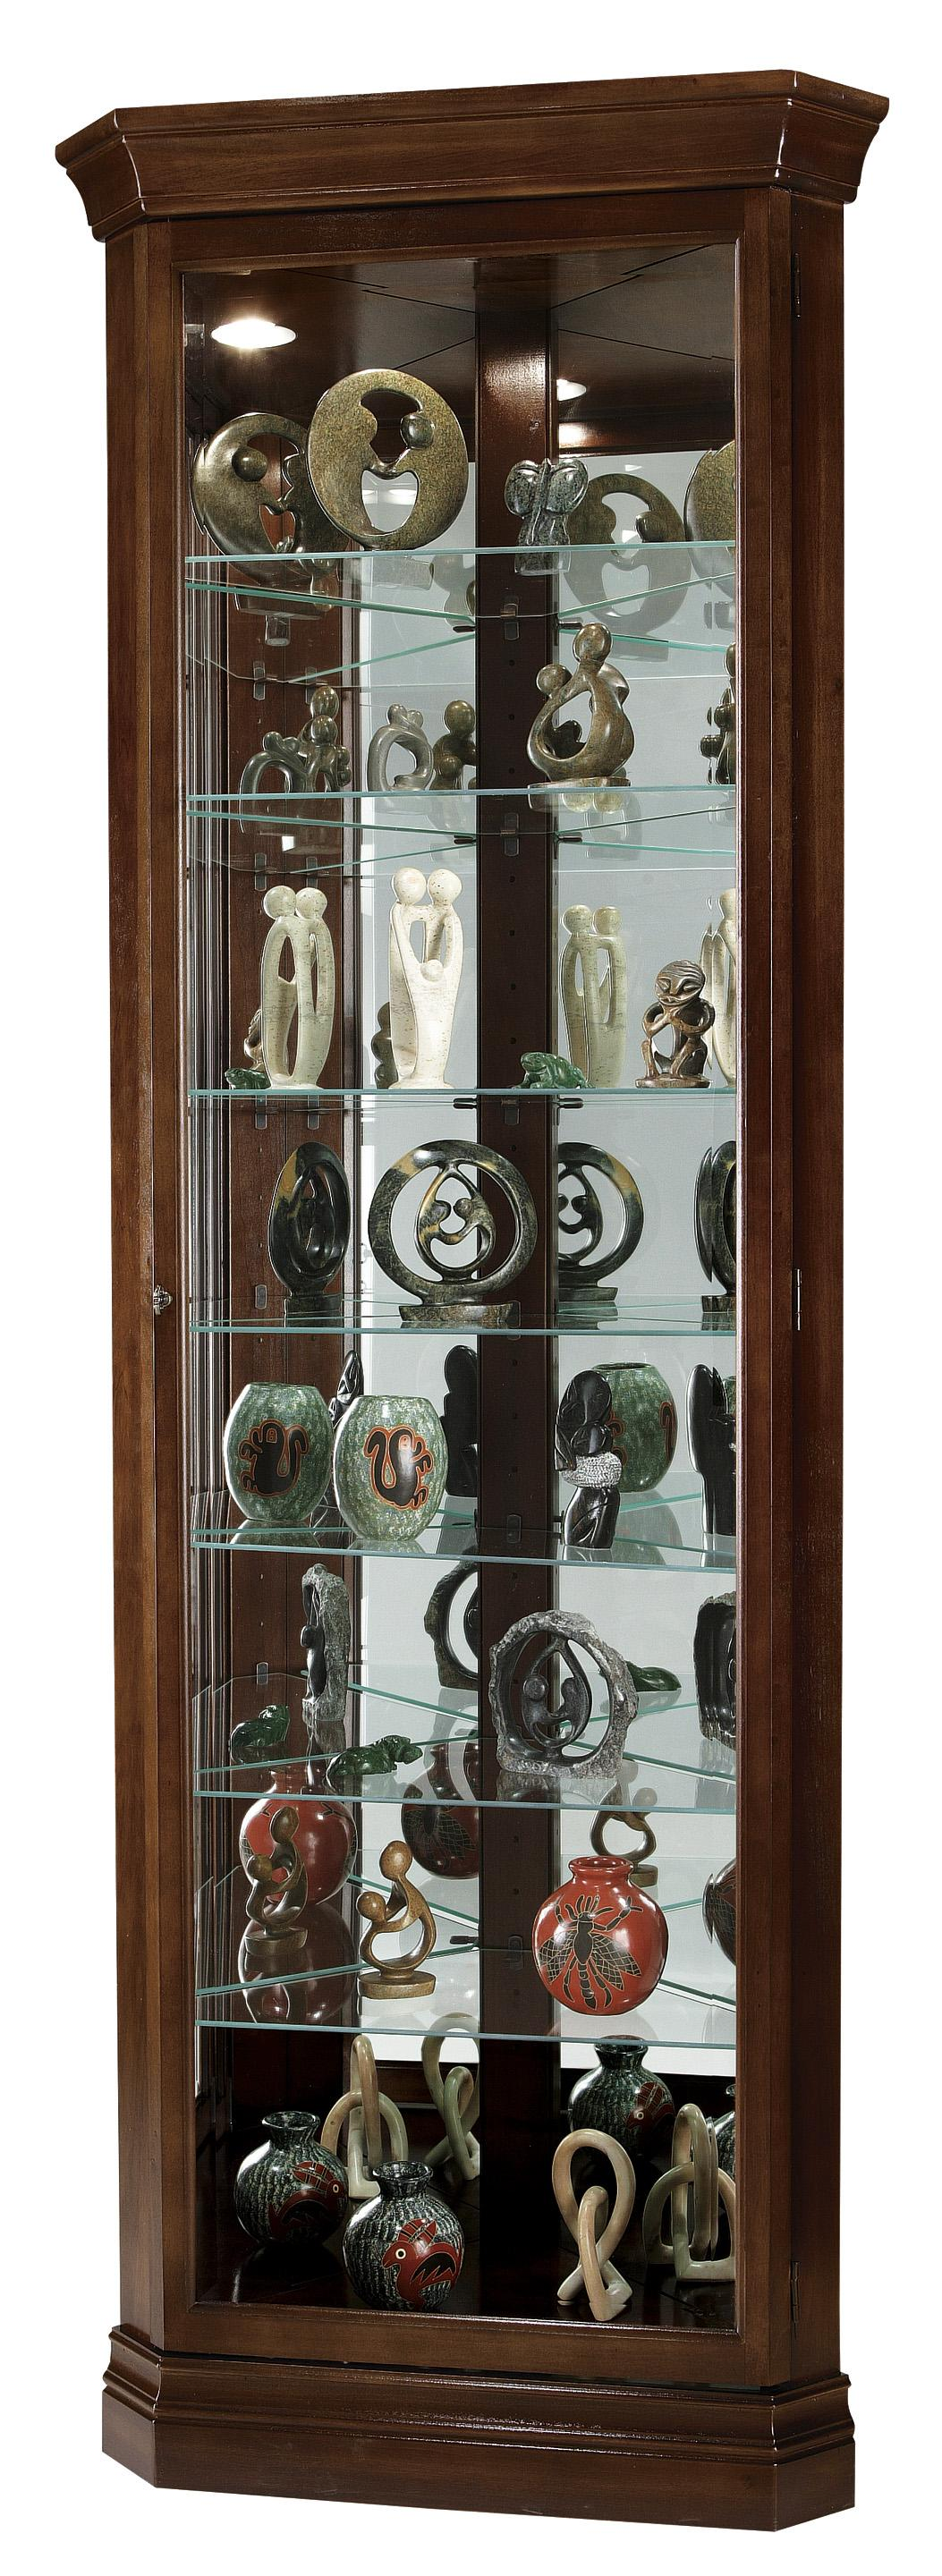 Howard Miller Corner Curios Drake Display Cabinet - Item Number: 680-483